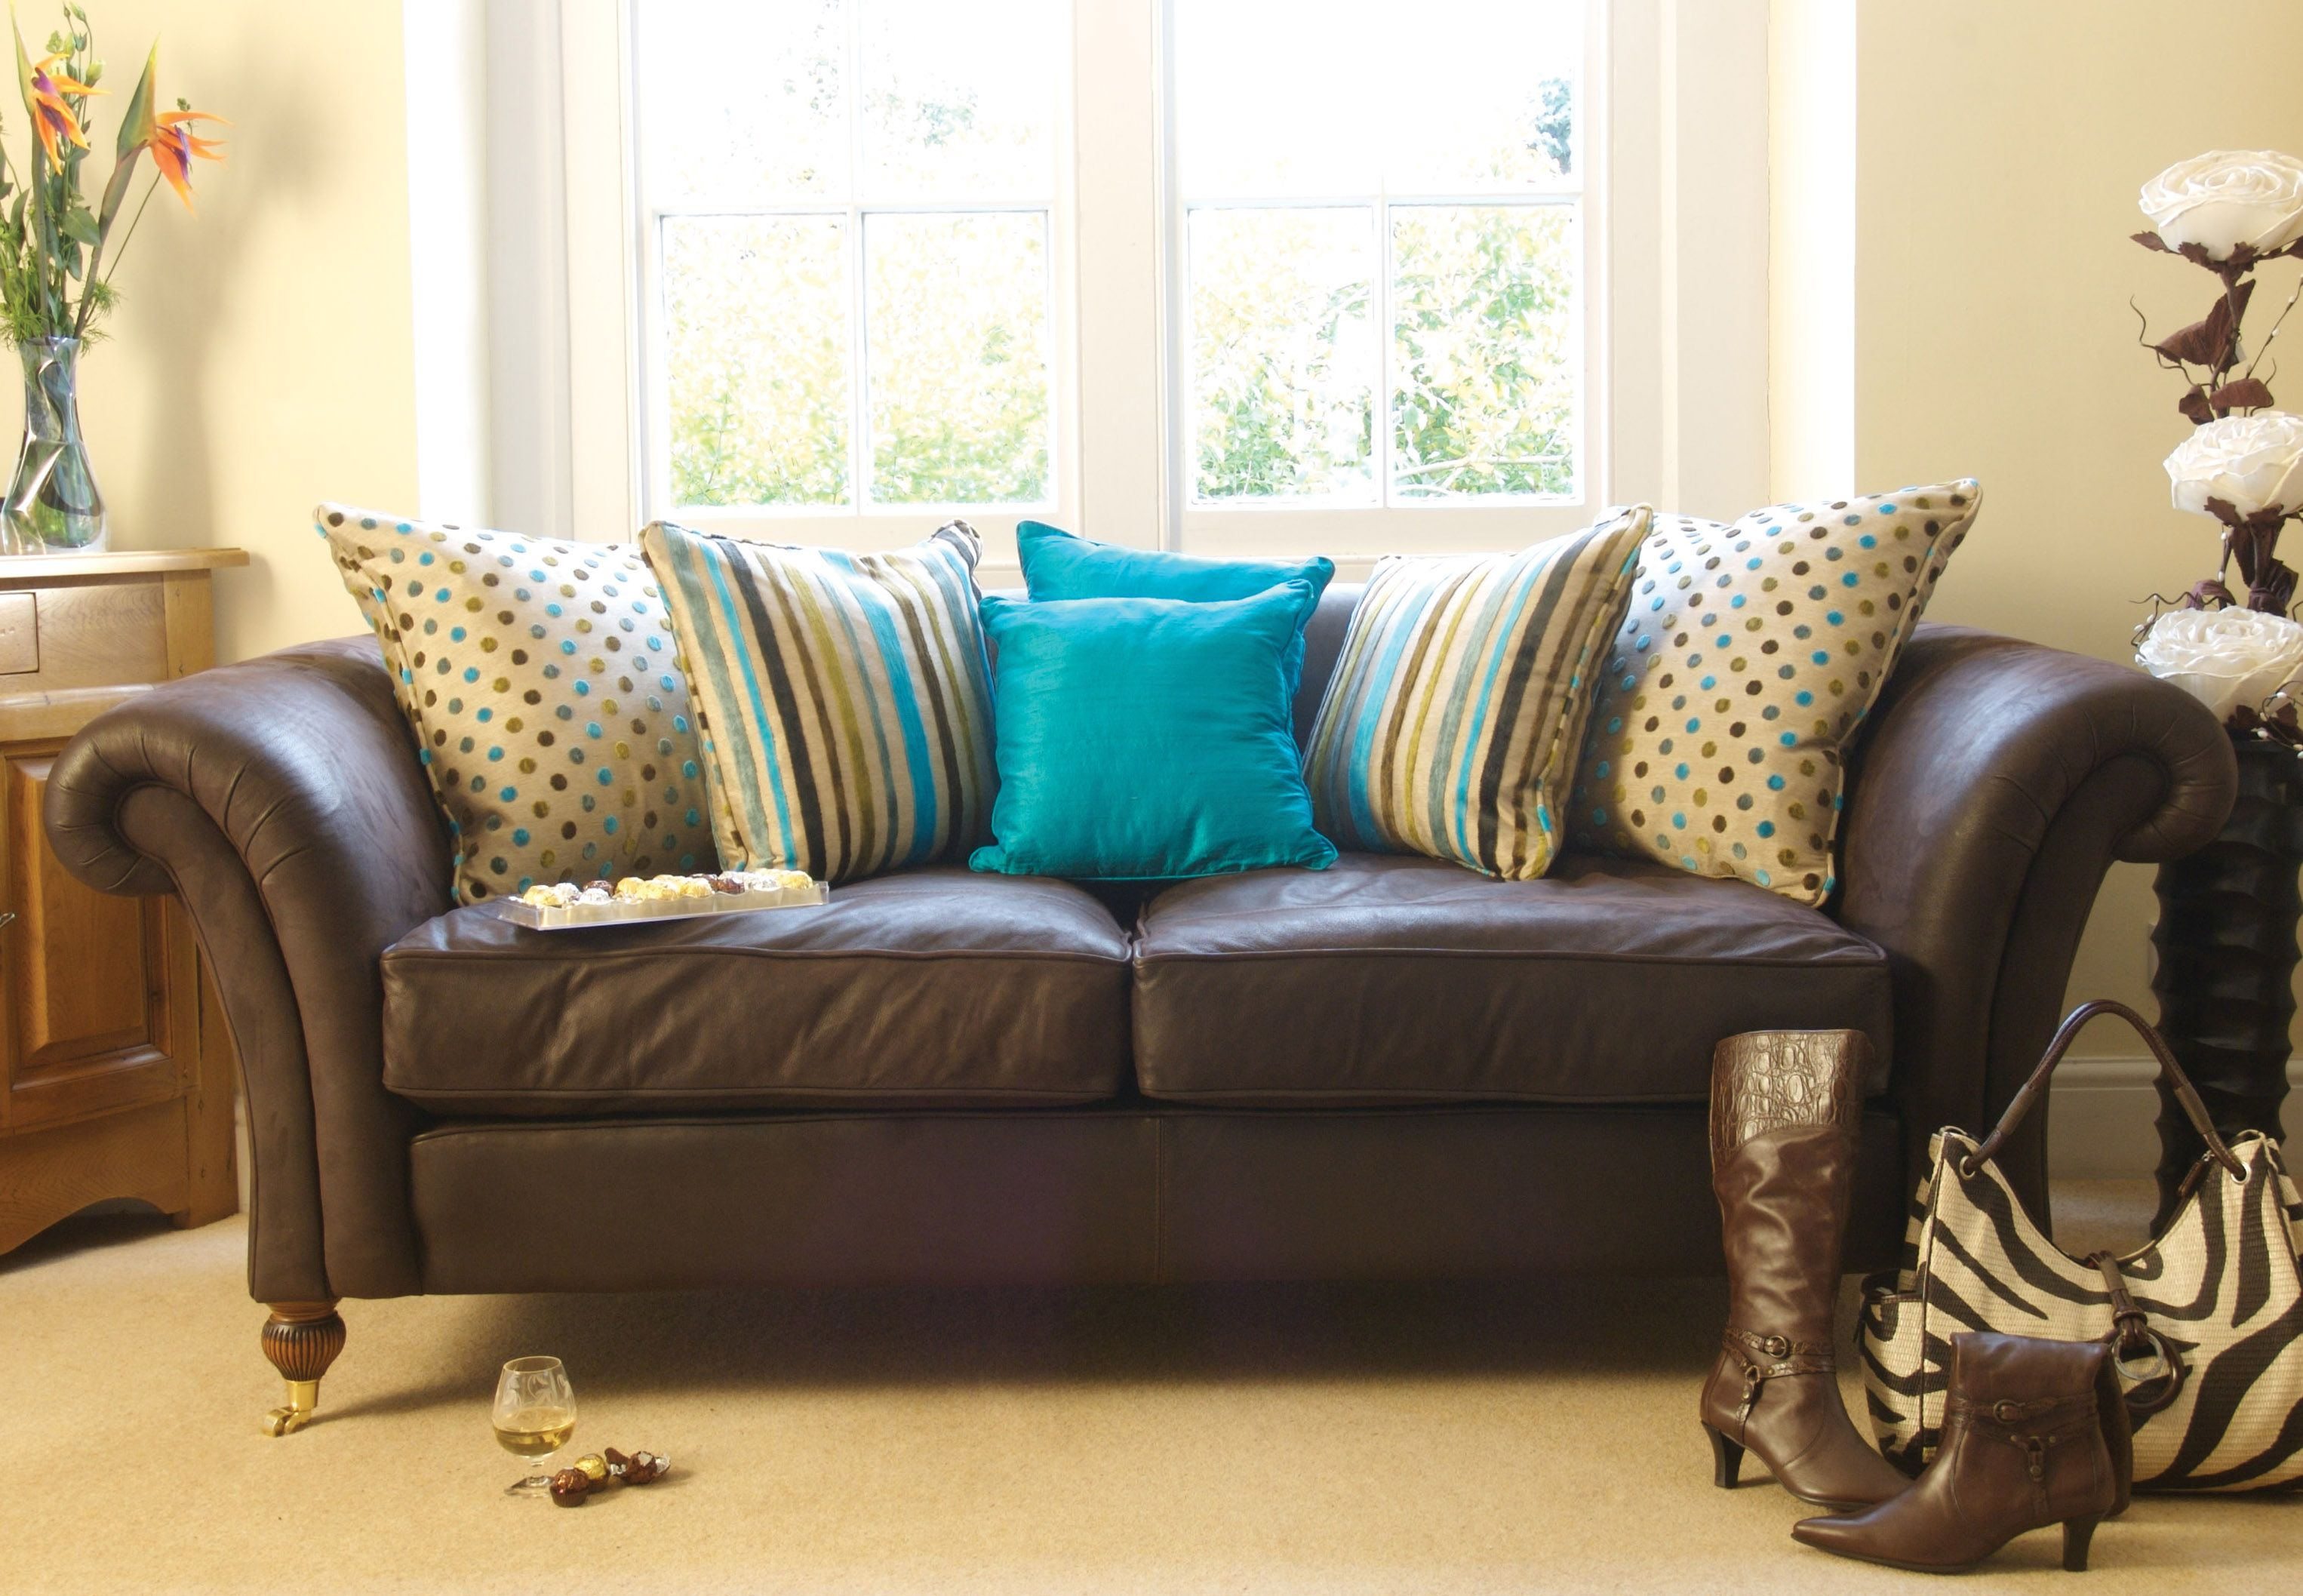 Turquoise On Brown Sofa For My Home Living Room Decor